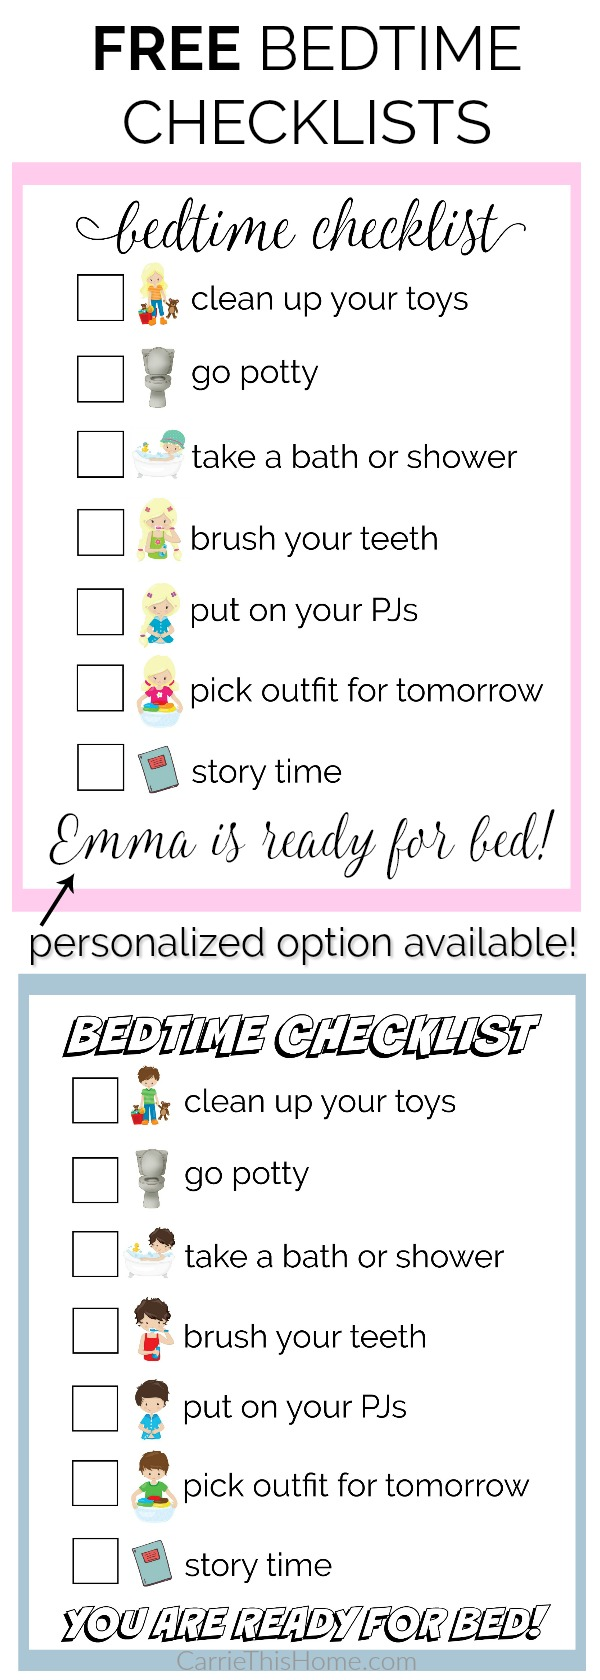 Make bedtime easier for you and your kids with these free bedtime checklists